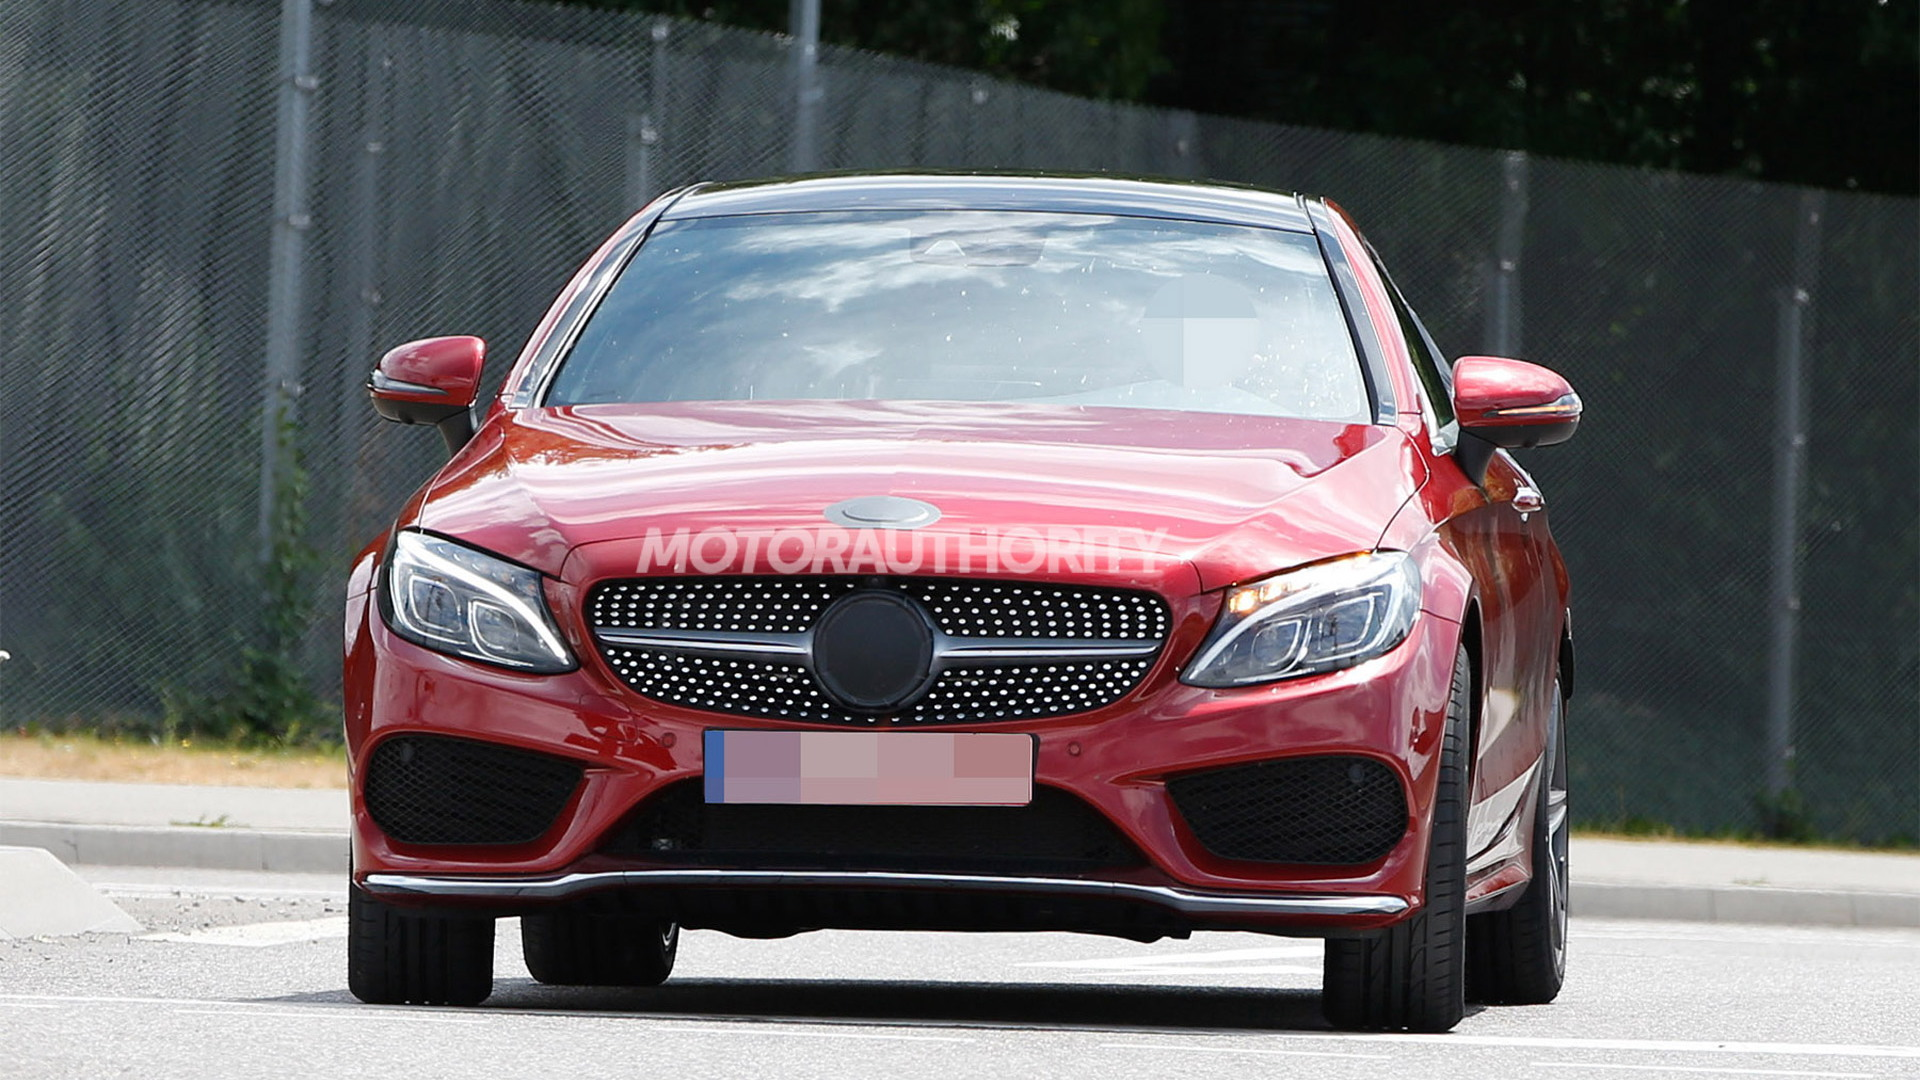 2017 Mercedes-Benz C-Class Coupe spy shots - Image via S. Baldauf/SB-Medien